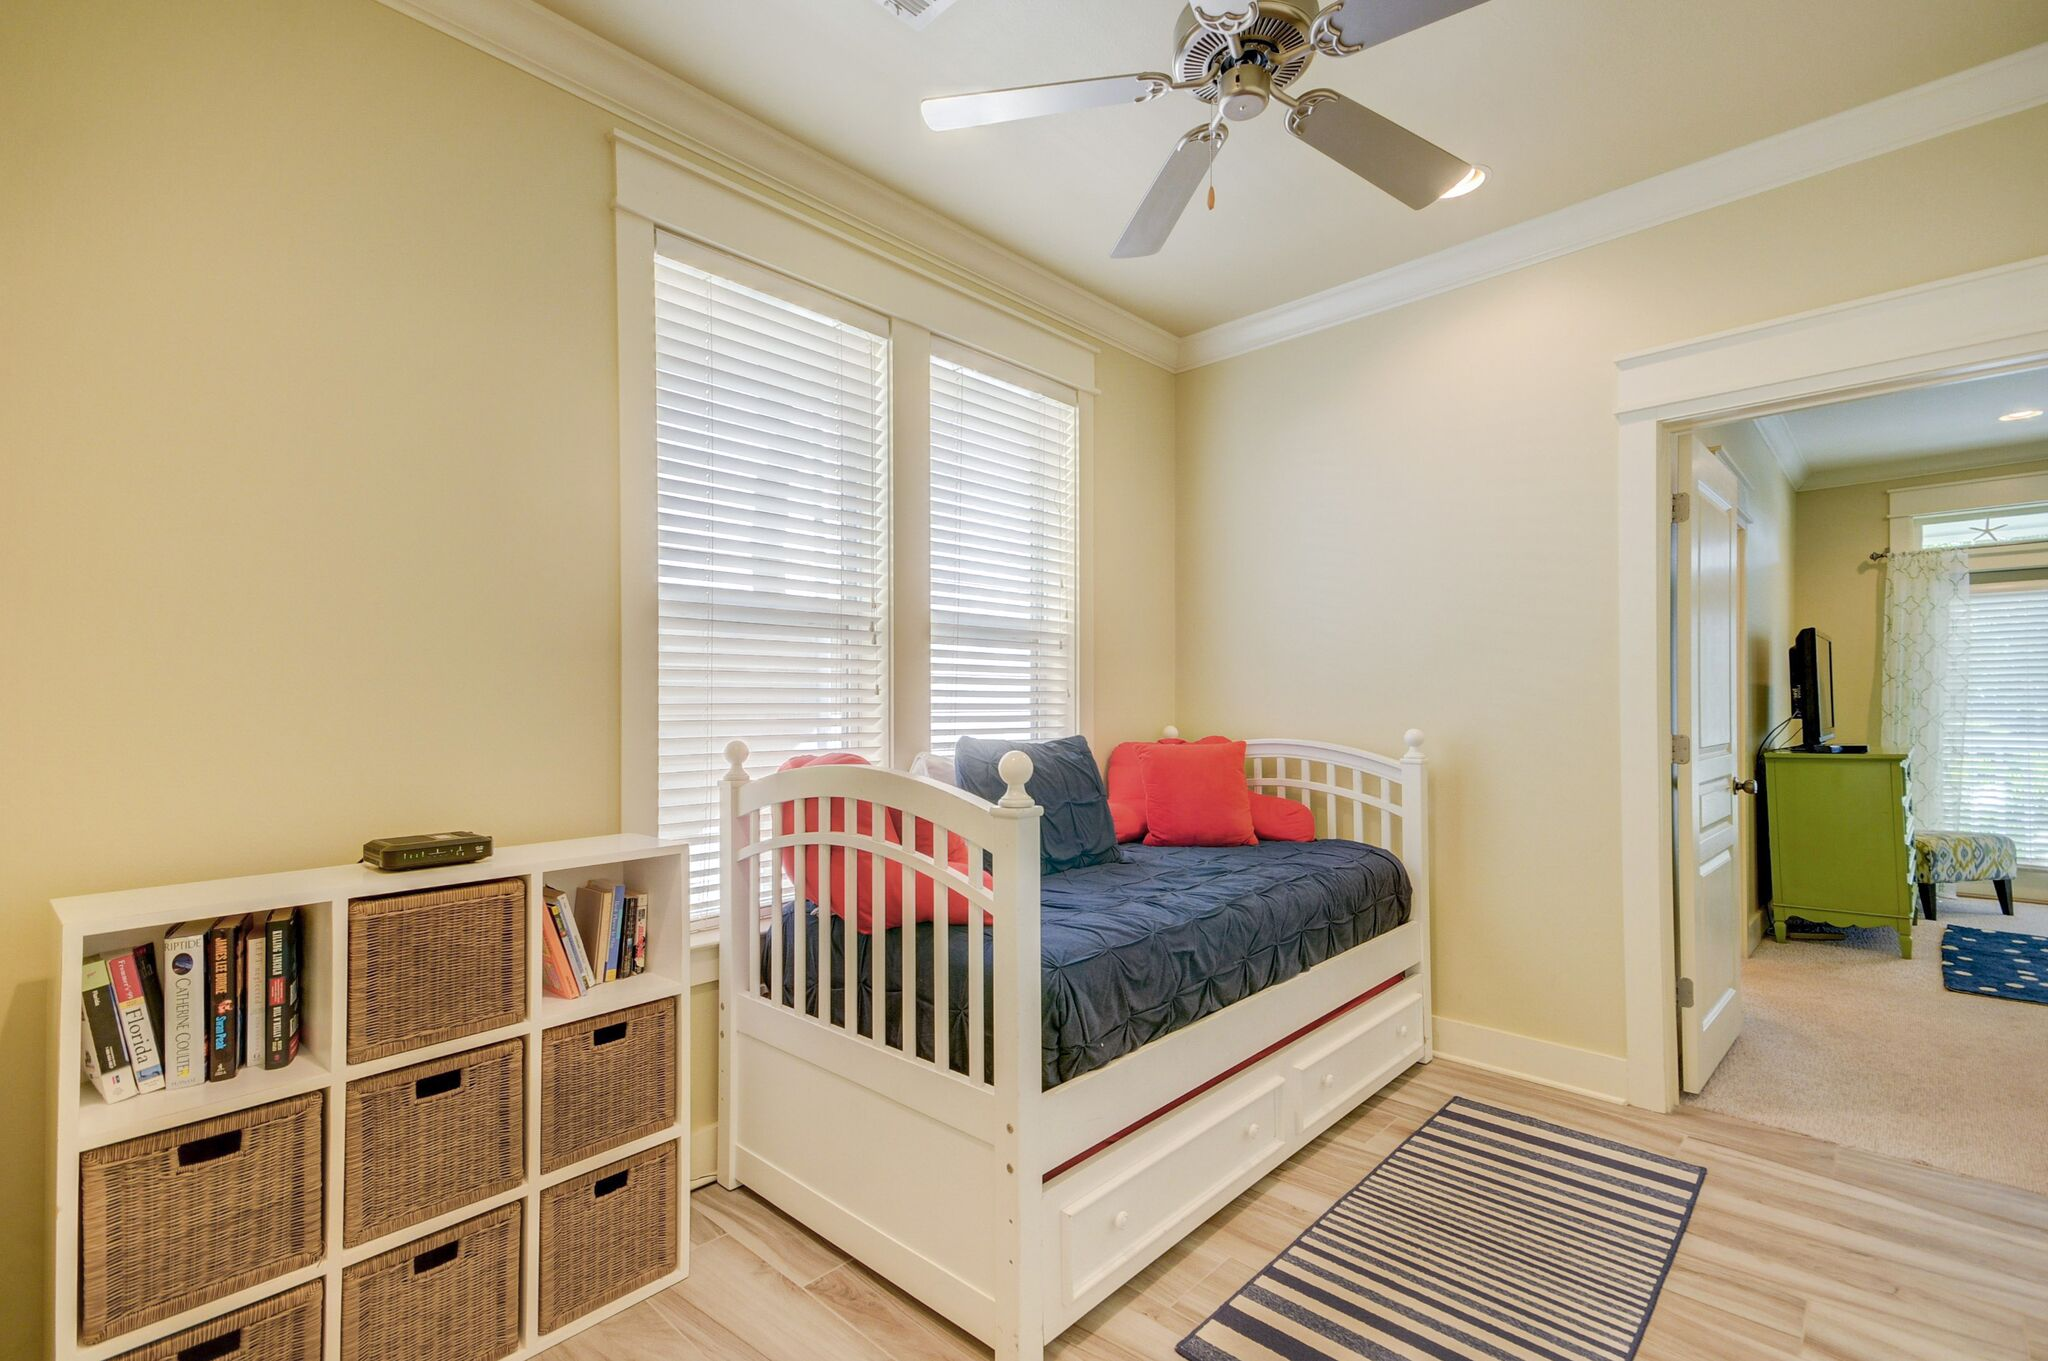 Comfortable Daybed with Trundle in between the Twin Bedroom and Queen Bedroom on 1st Floor